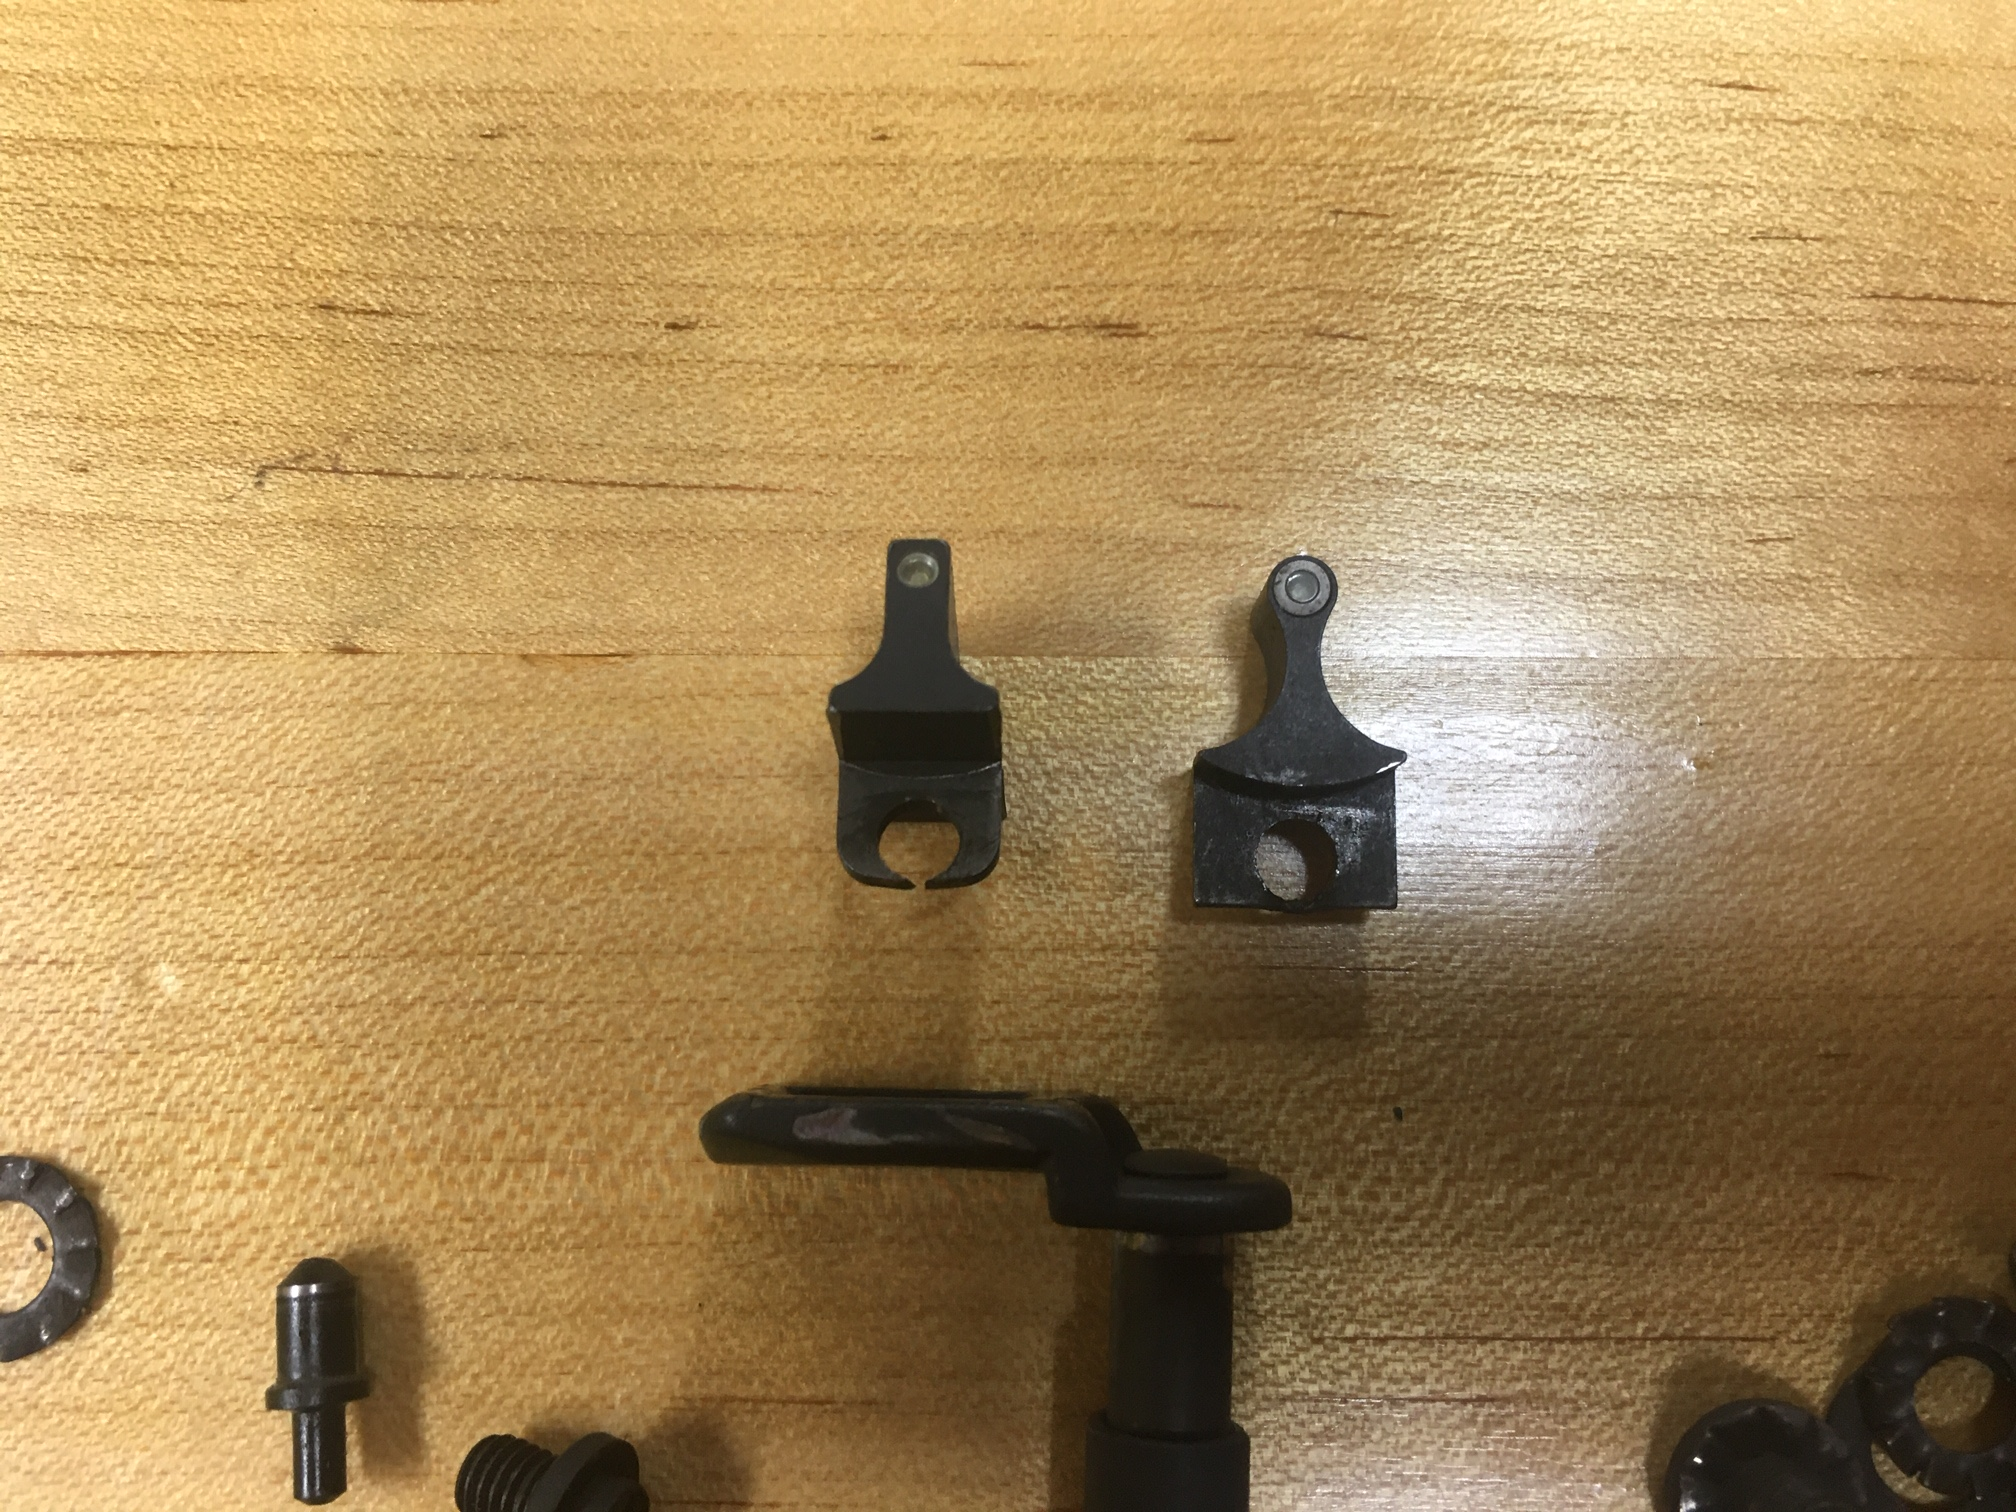 WTS: HK Diopter sights, front night sights, sight parts, ect-img_4501.jpg